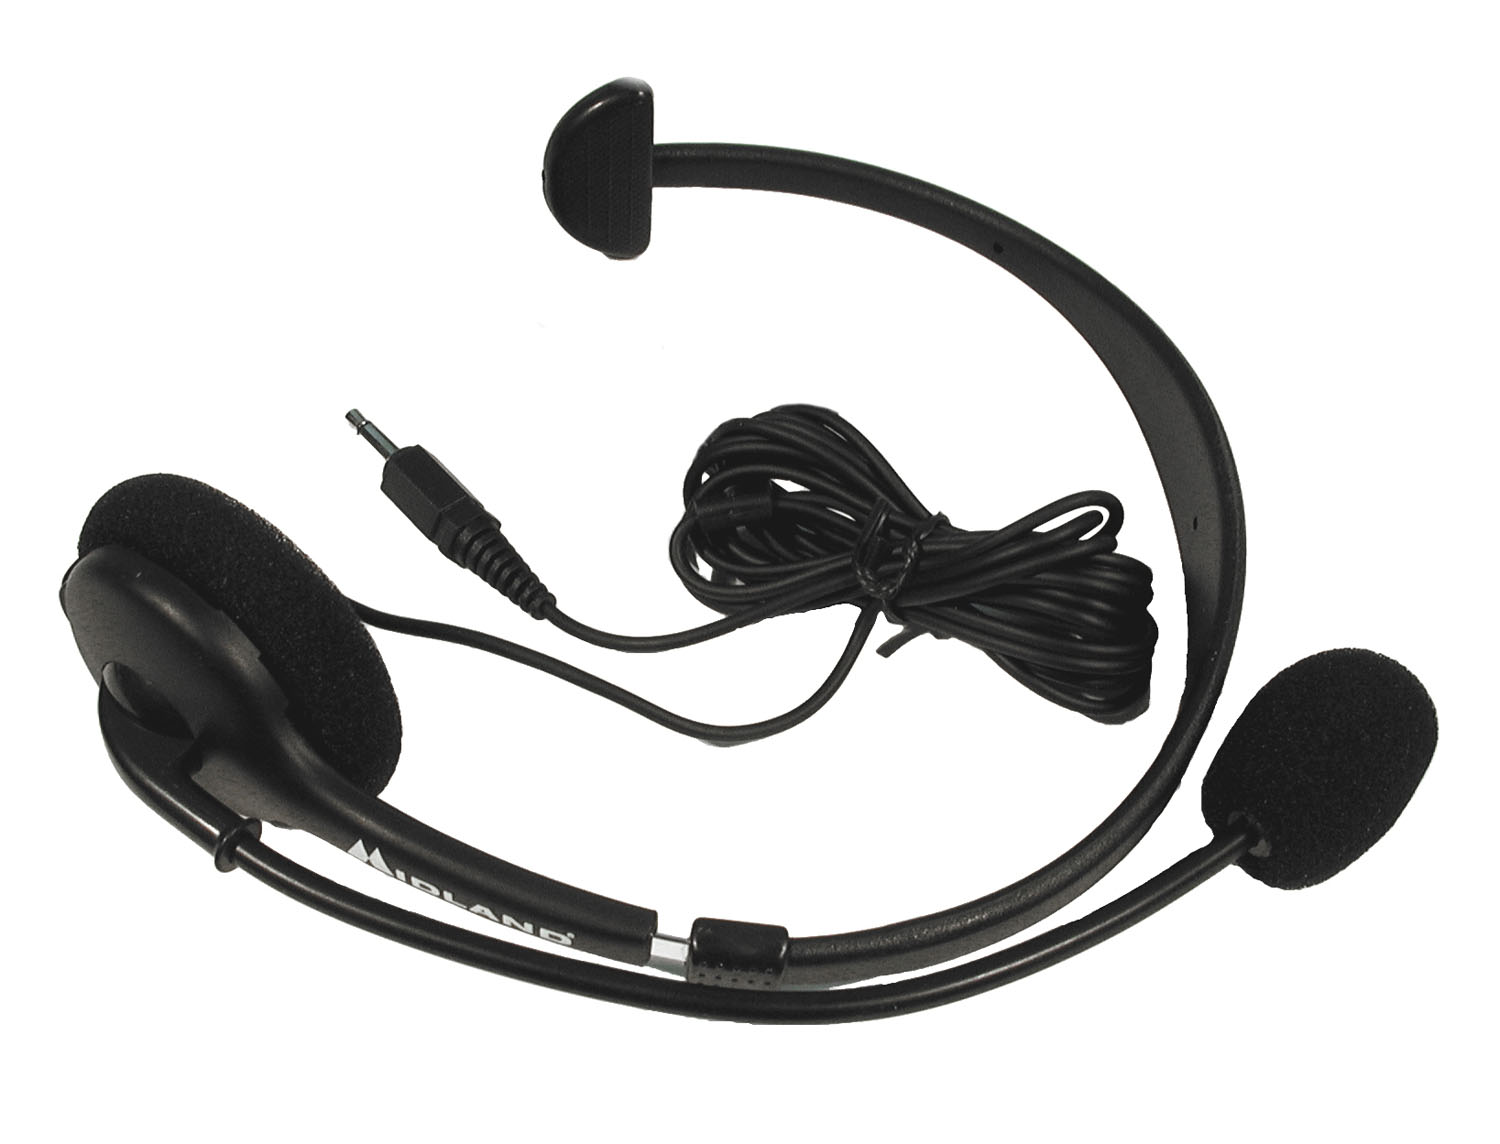 22540 - MIDLAND PROFESSIONAL HEADSET WITH BOOM MICROPHONE